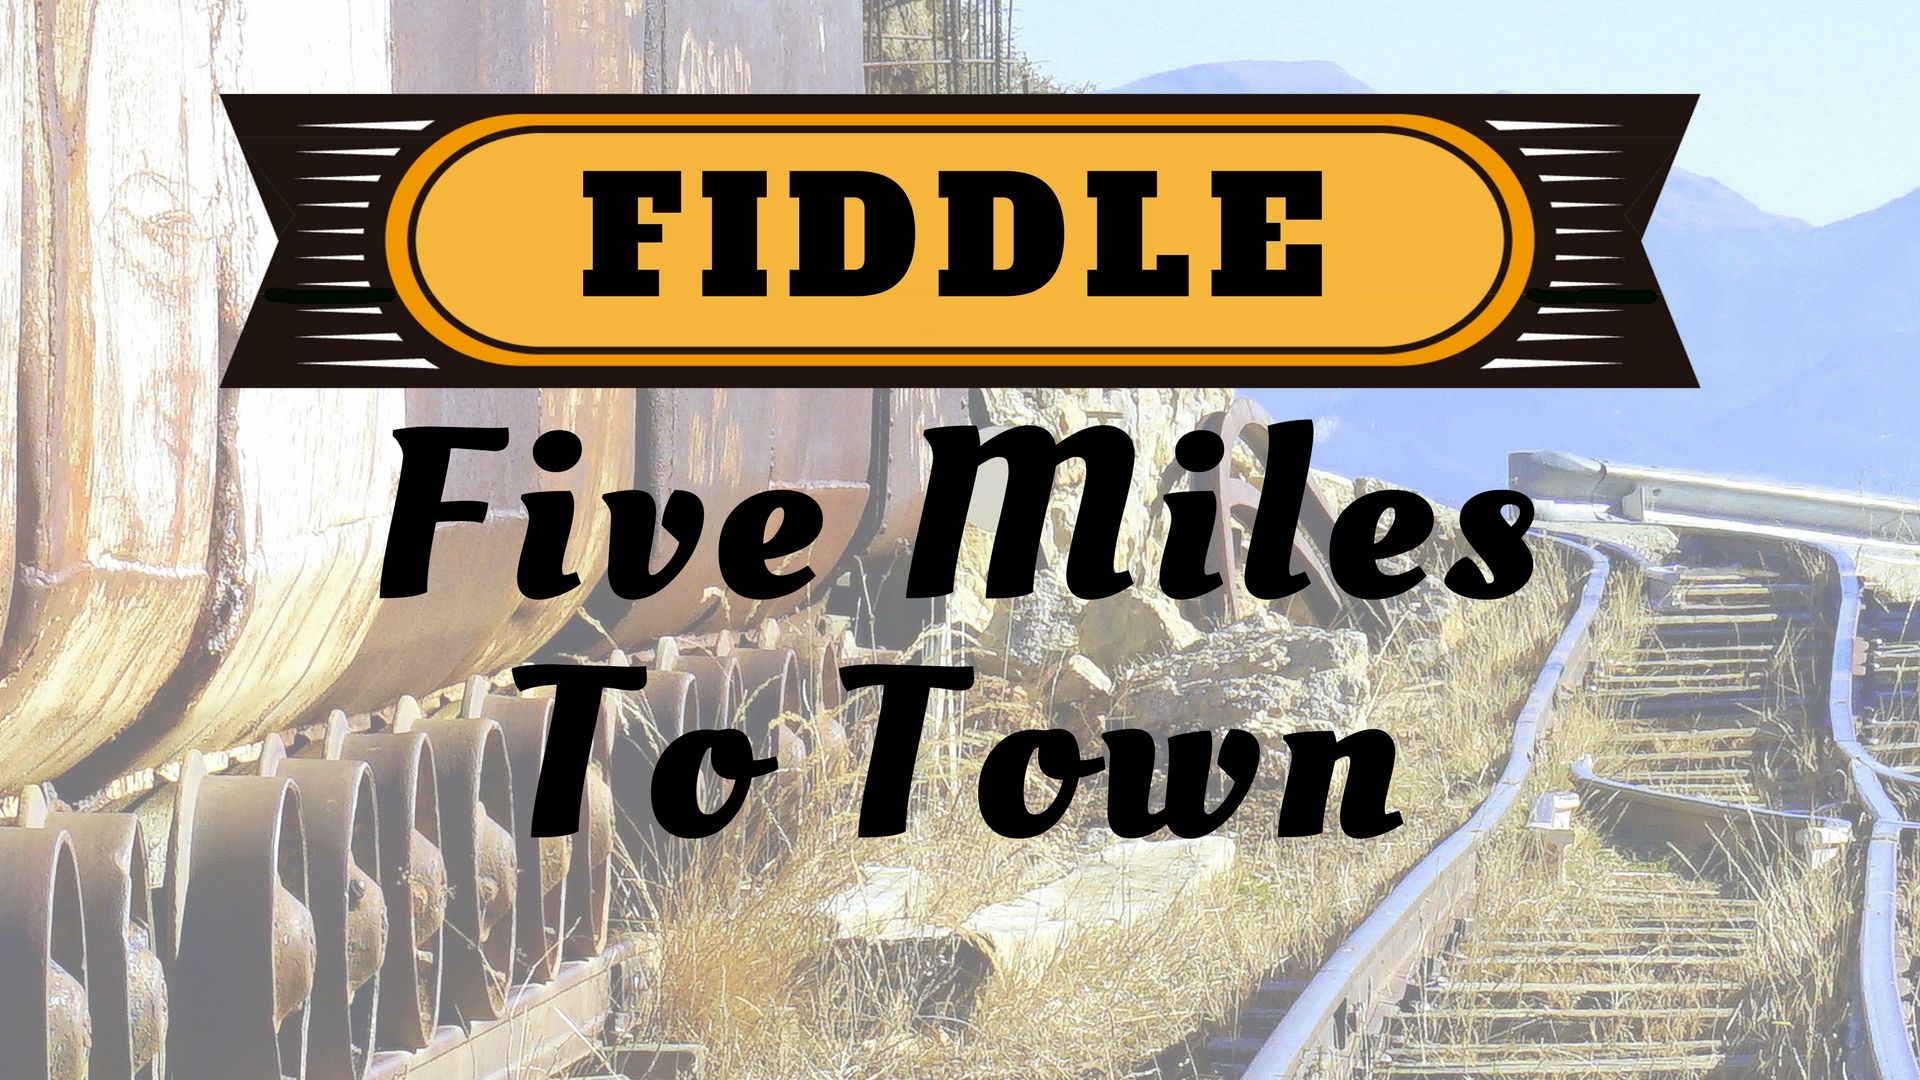 Fiddle Five Miles to Town